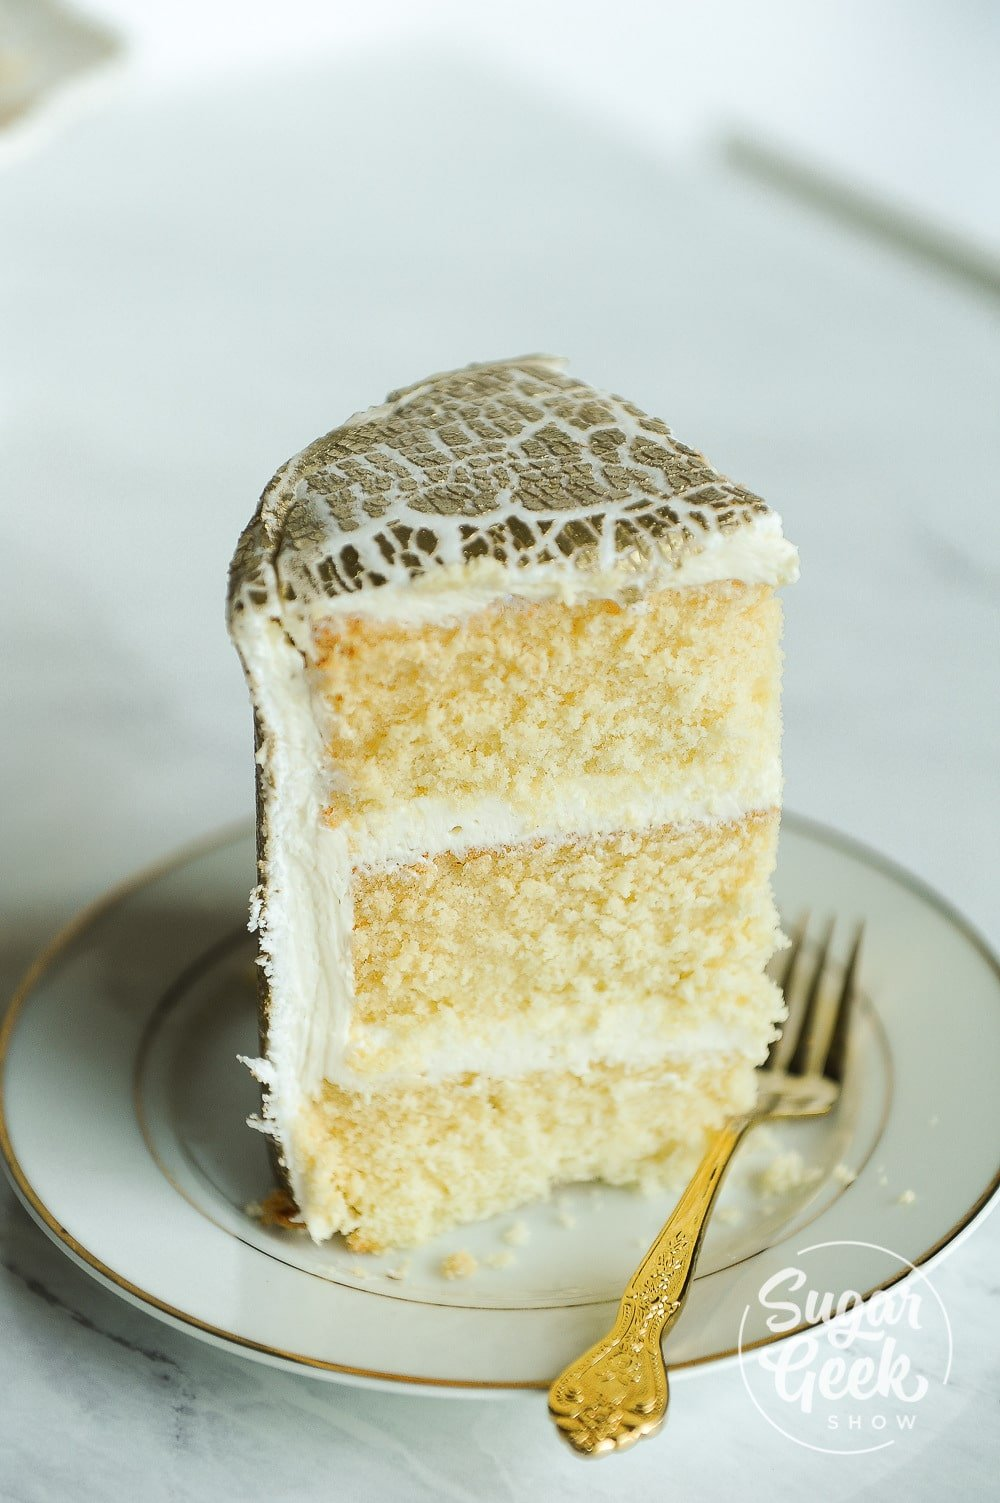 gold crackled fondant